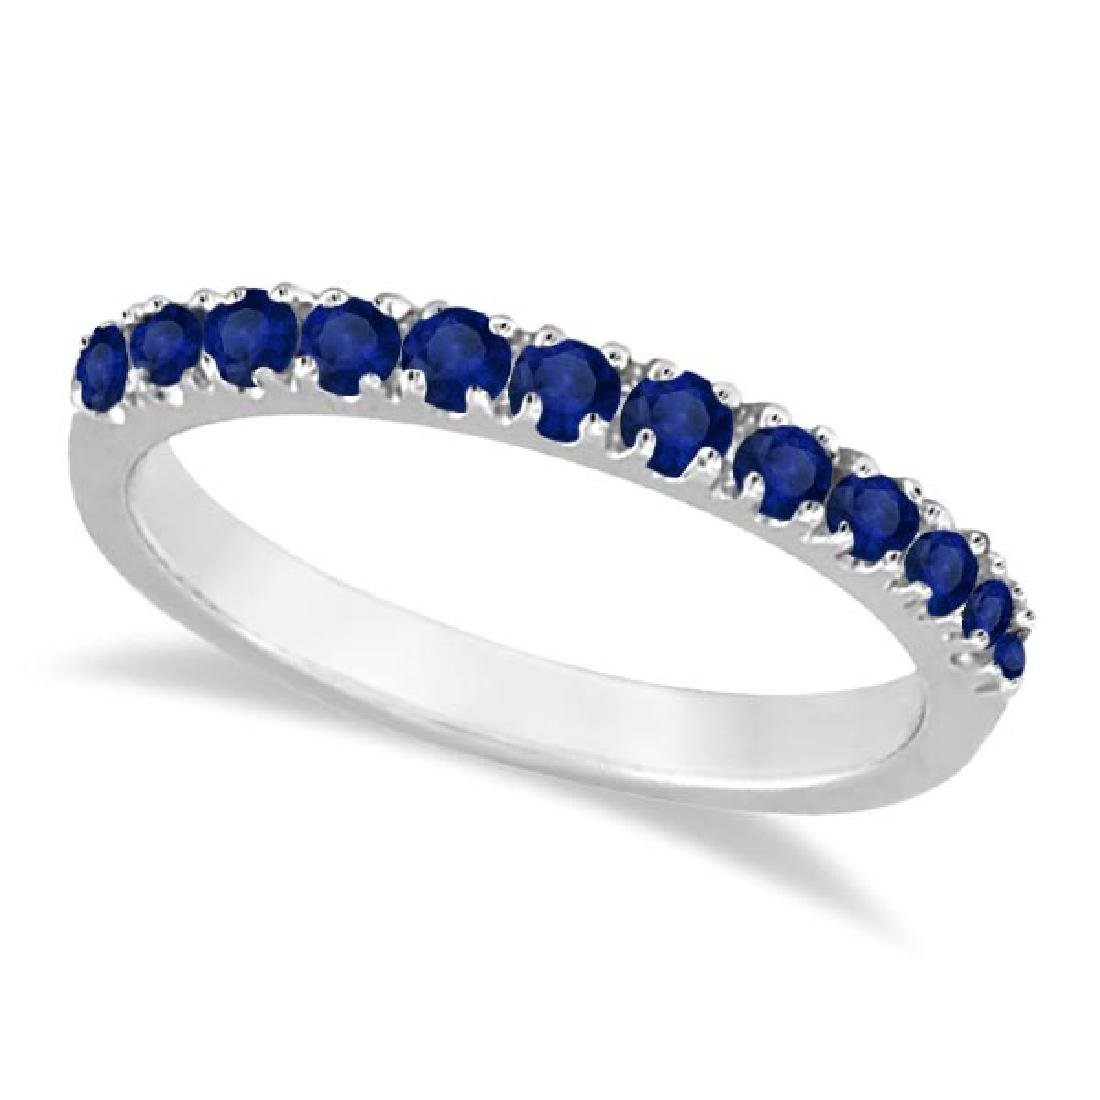 Blue Sapphire Stackable Ring/ Anniversary Band in 14k W